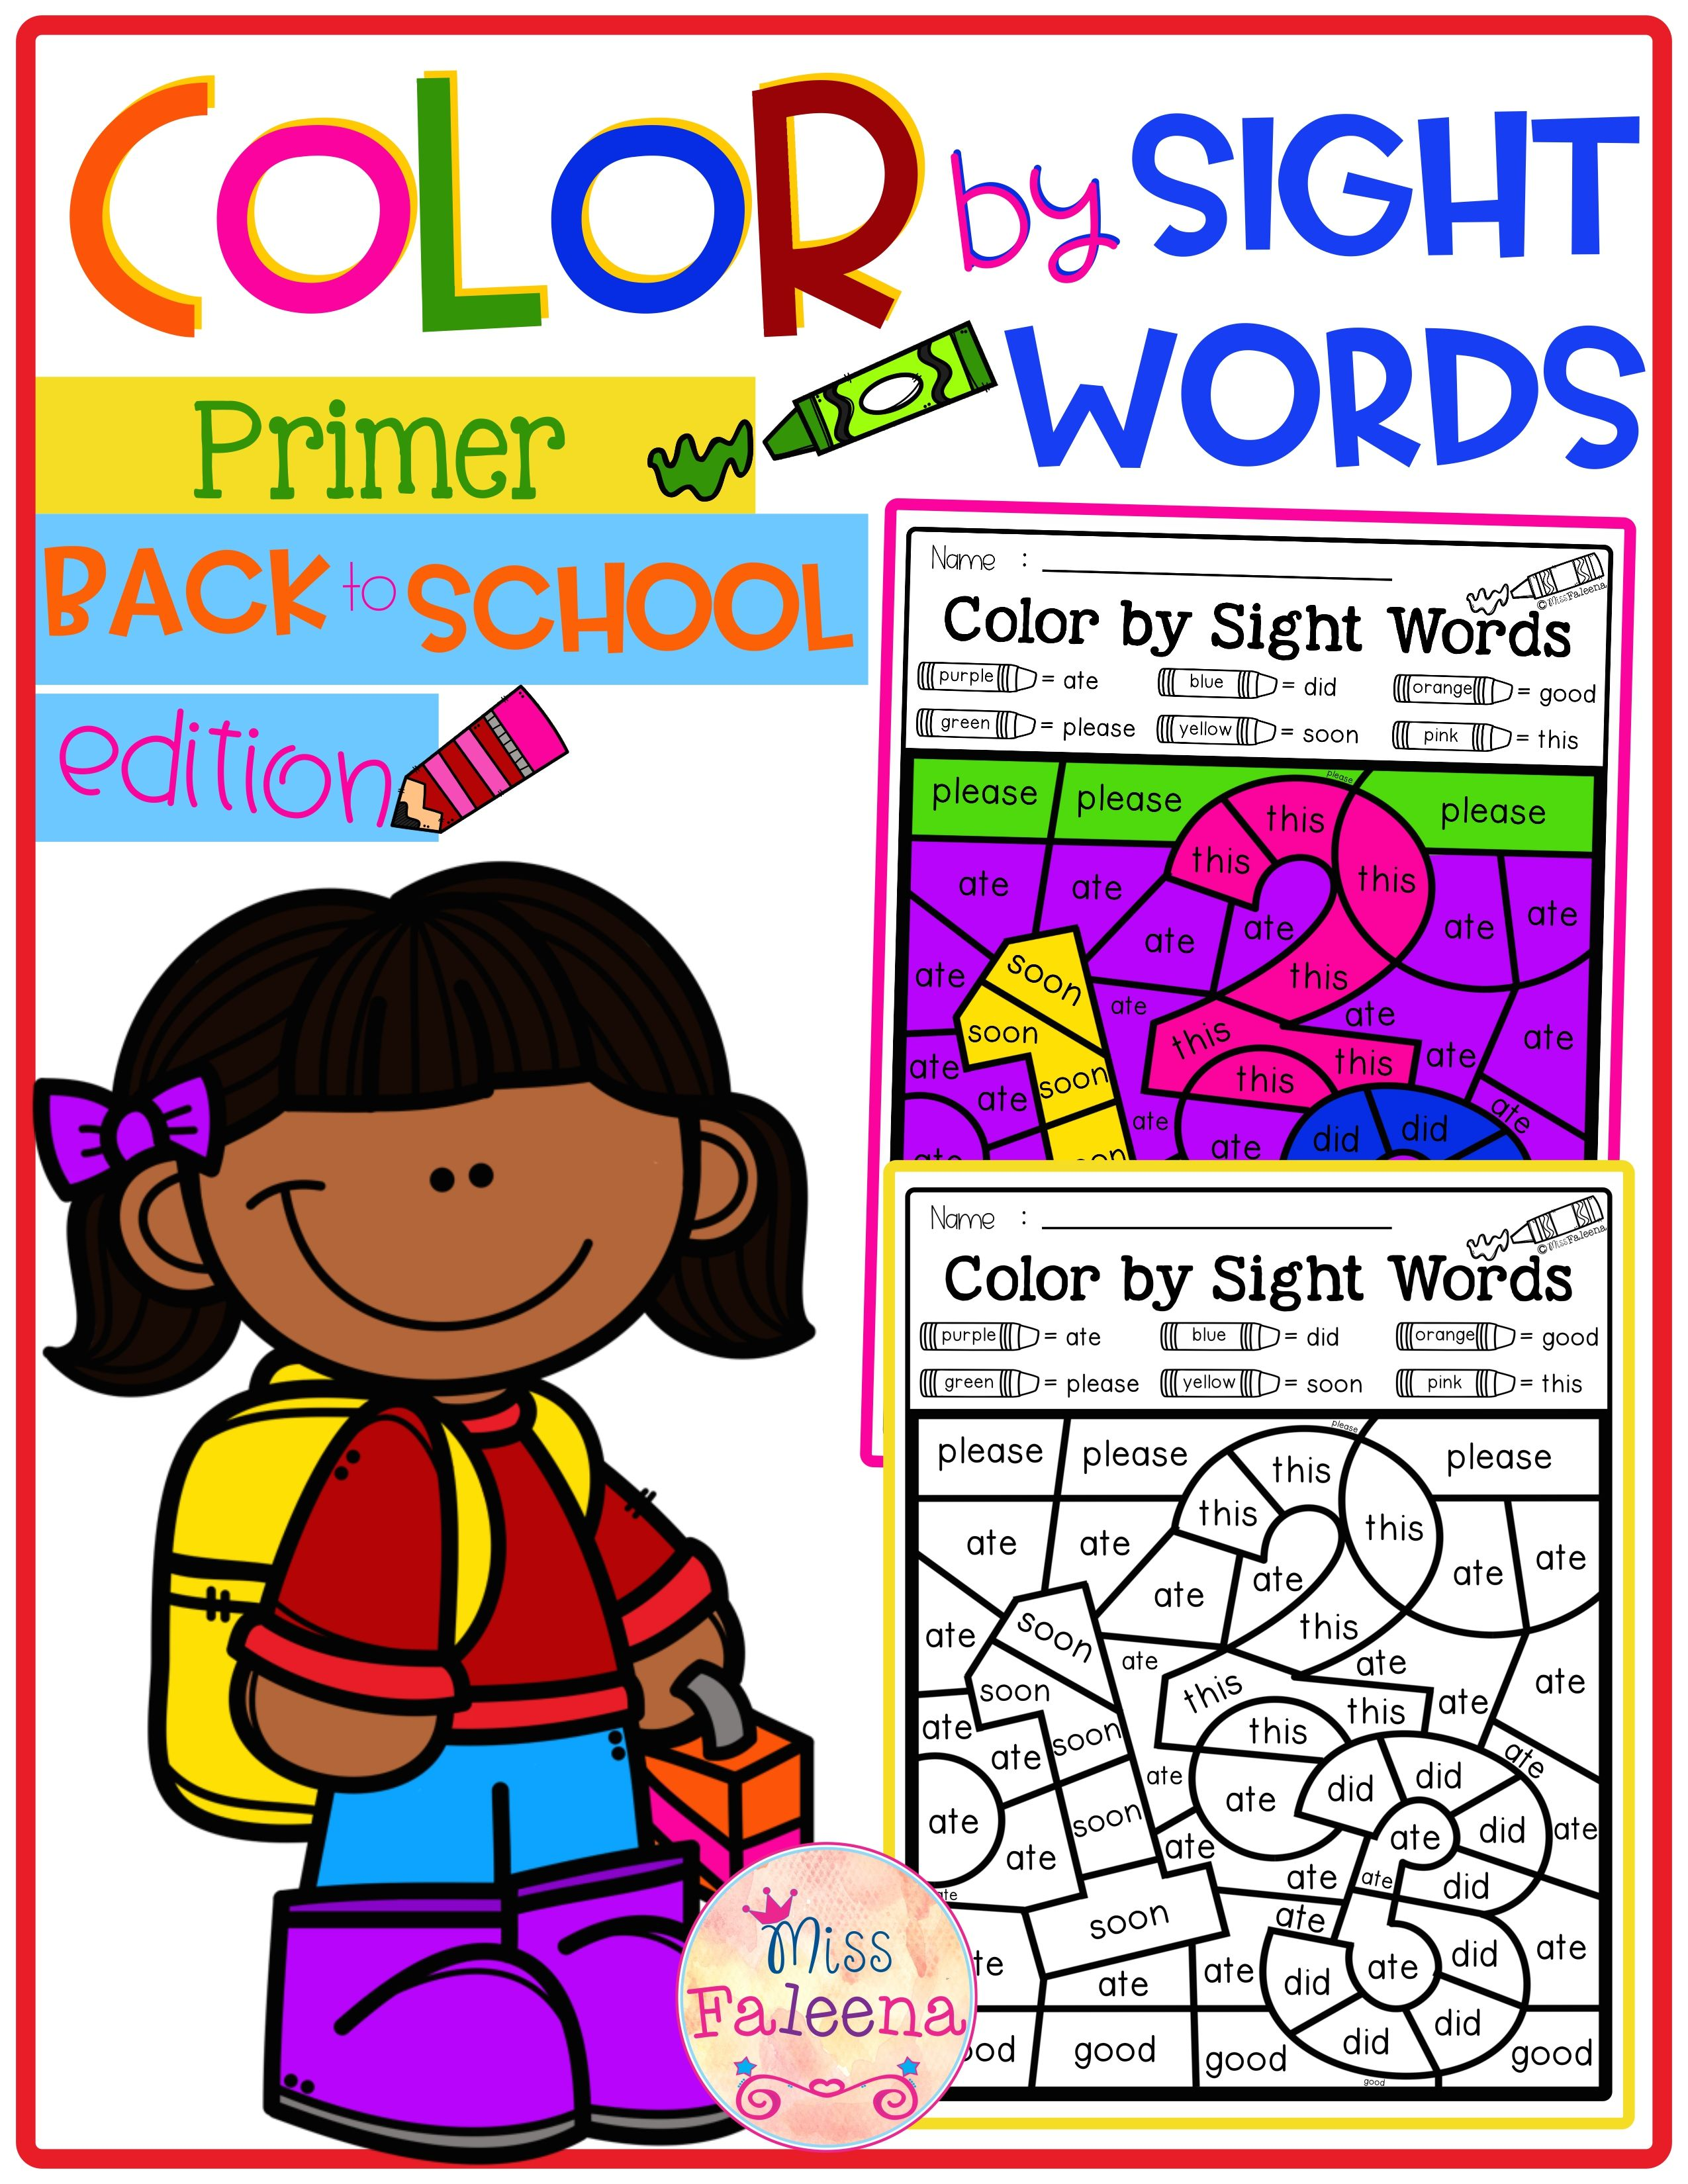 There Are 20 Pages Of Color By Sight Words Worksheets In